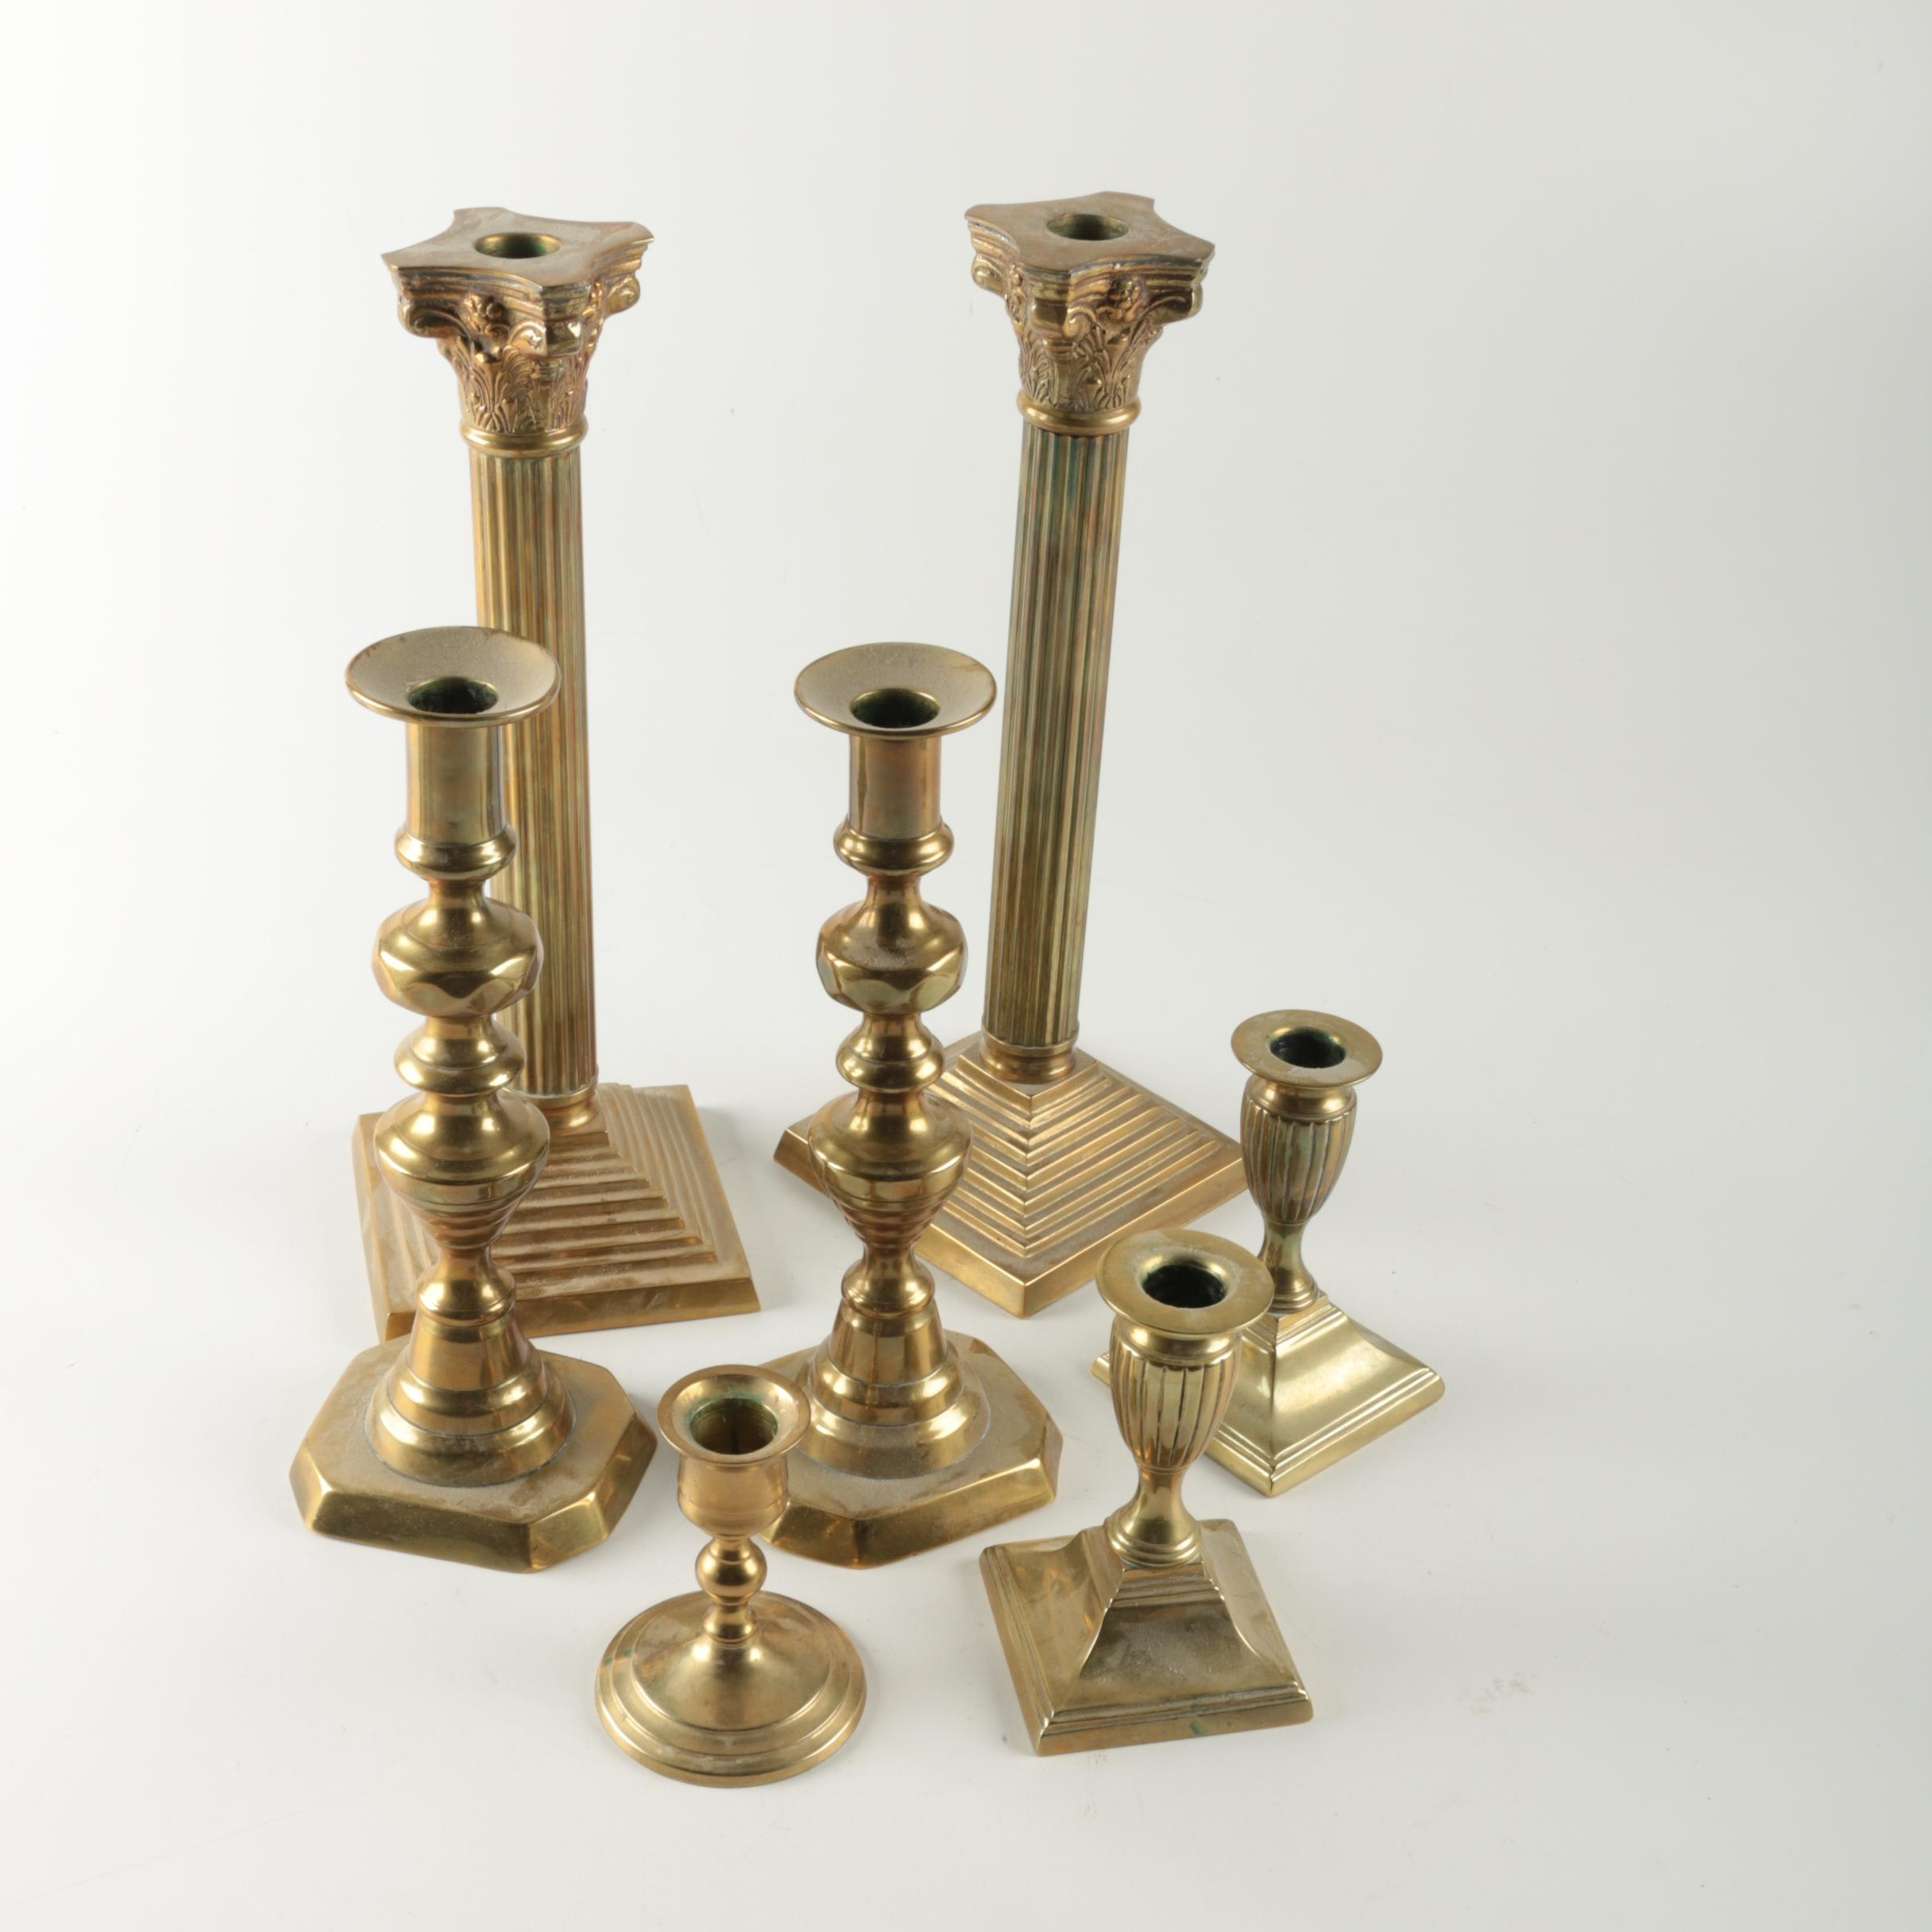 Brass Candlesticks including a Pair of Beehive Push-Up